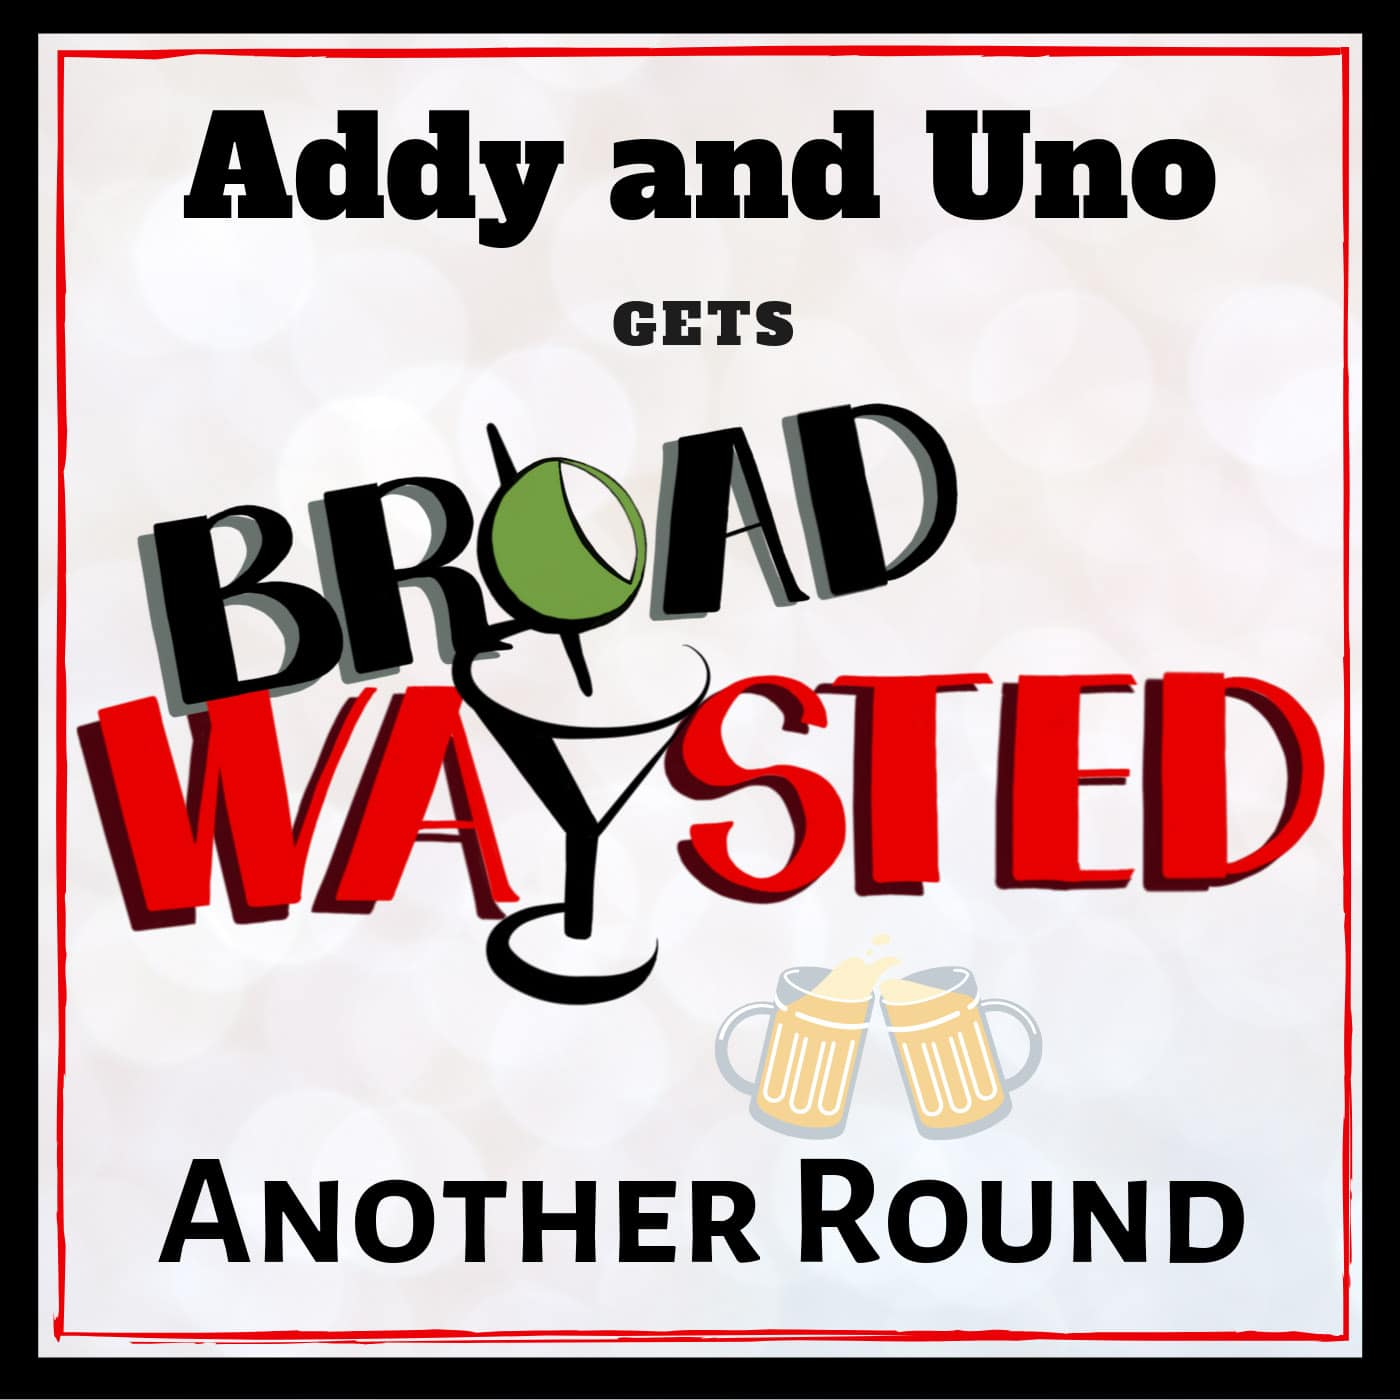 Broadwaysted Another Round Addy _ Uno